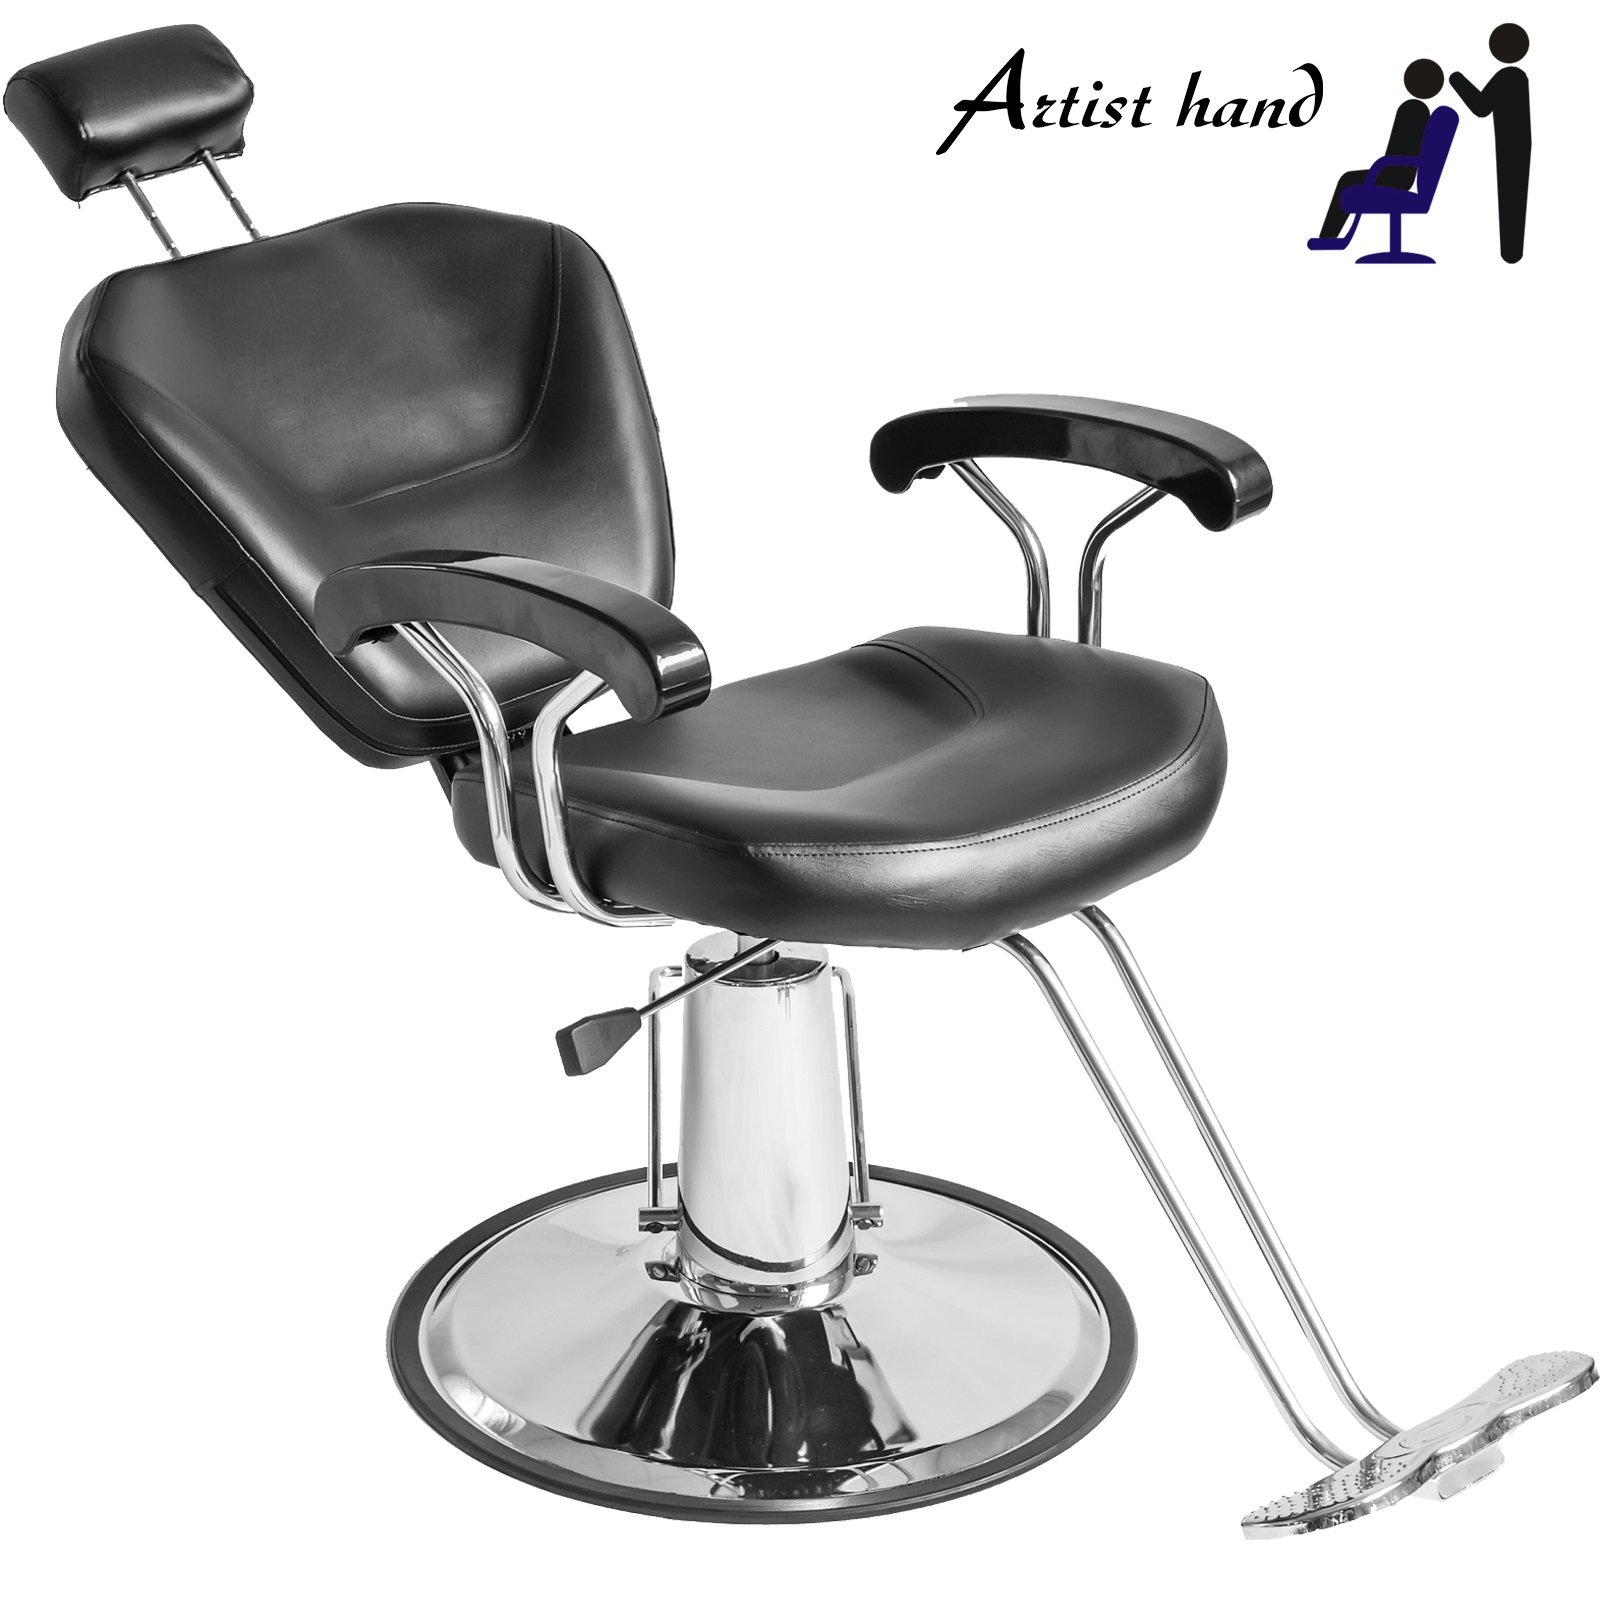 Artist Hand 20'' Wide All Purpose Hydraulic Barber Chair Salon Spa Styling Equipment by Artist Hand